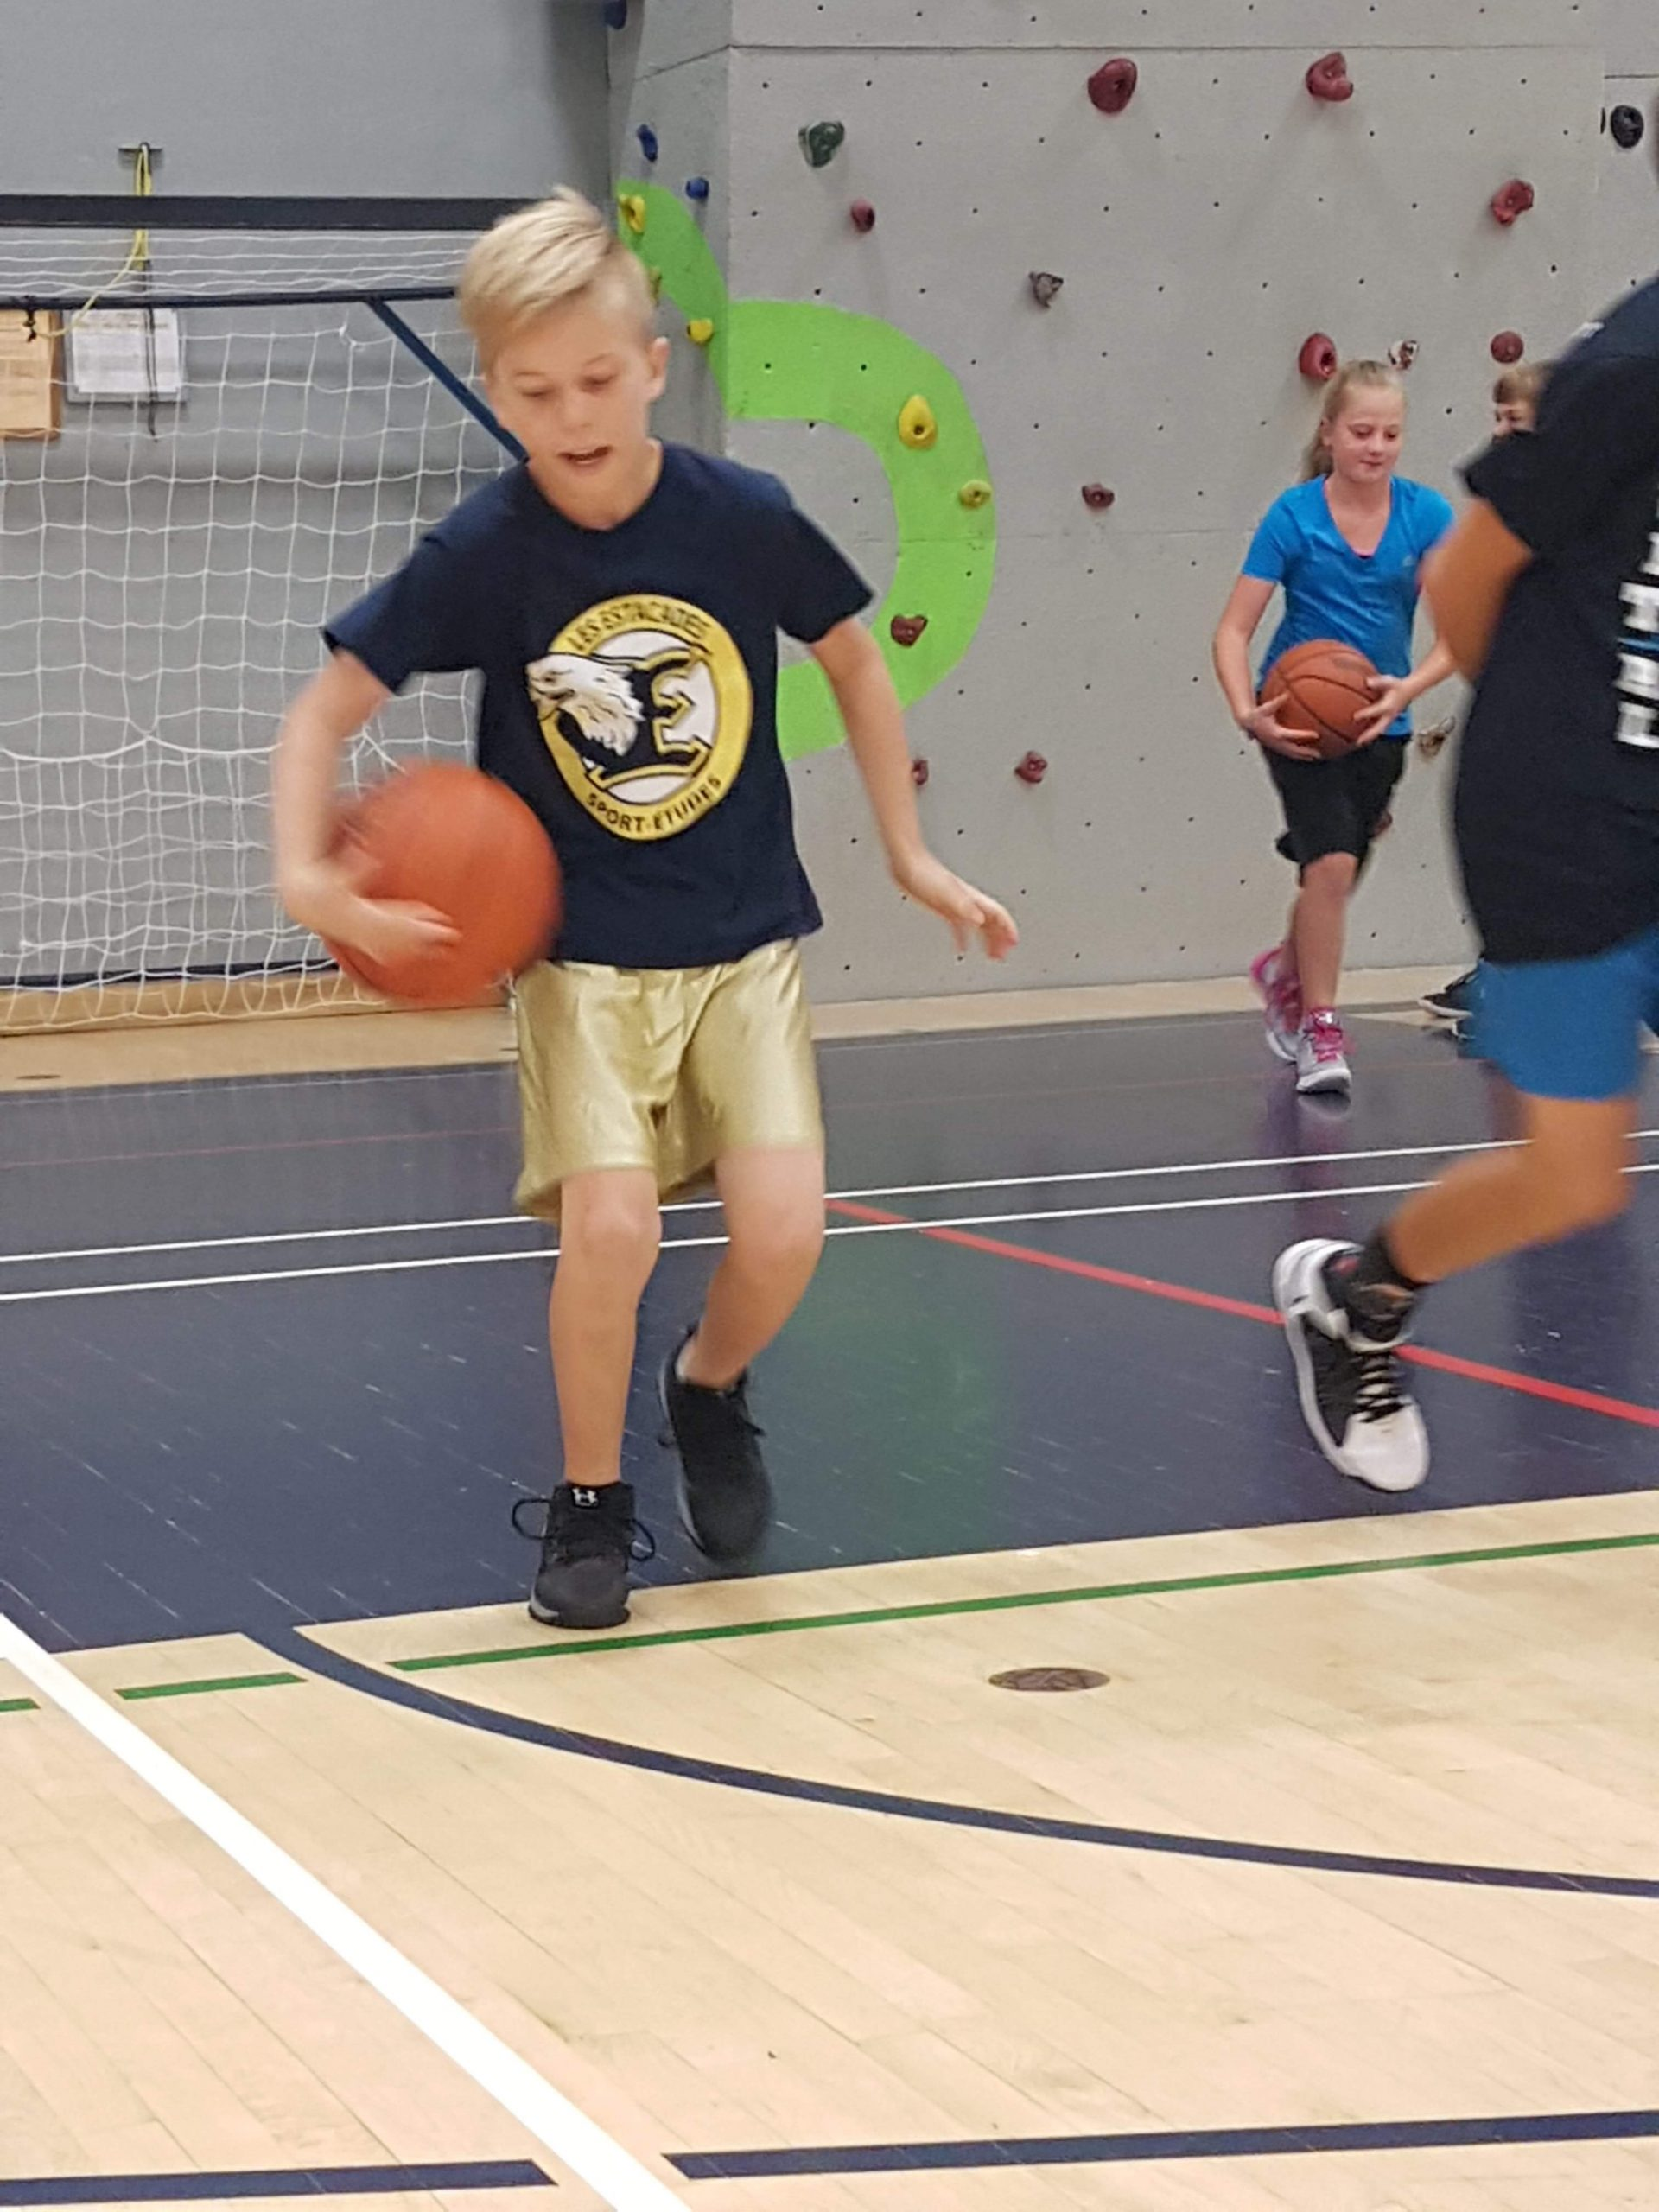 Camp basketball VITAL 2018 - 01